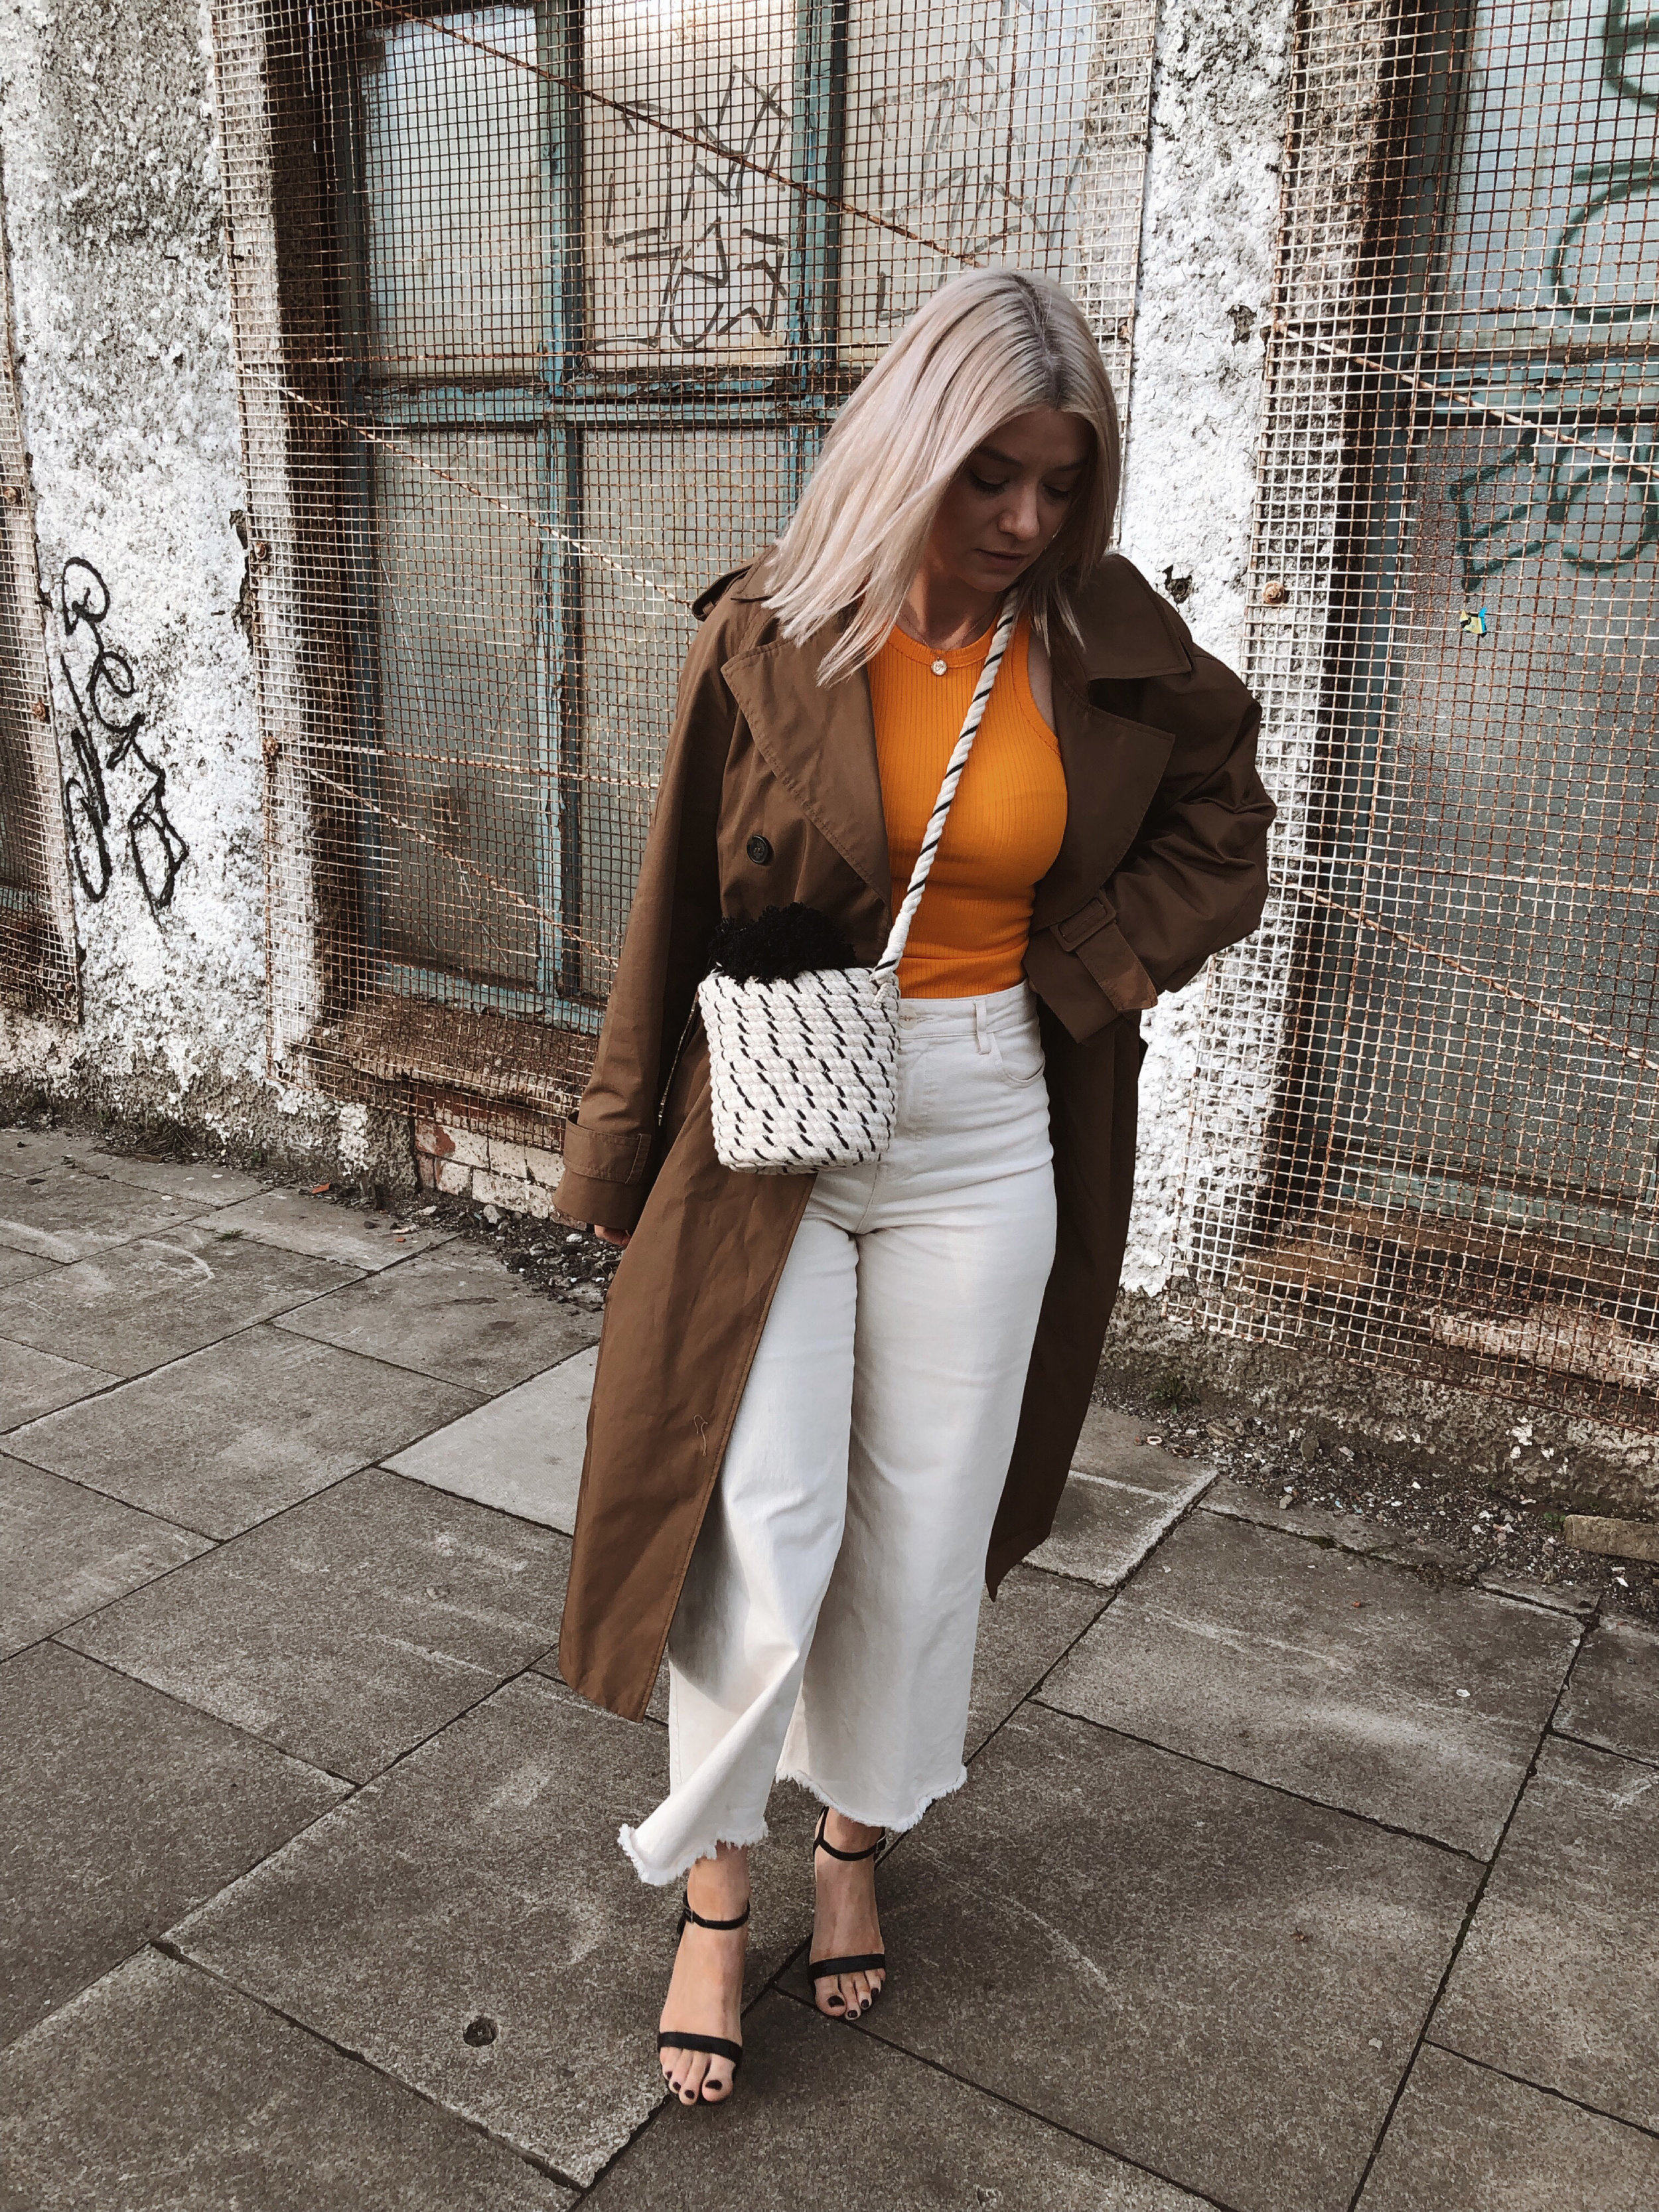 h&m studio collection ss19, cream jeans, orange tank top, ribbed tank top, trench coat, black heels, joey taylor, northern magpie 3